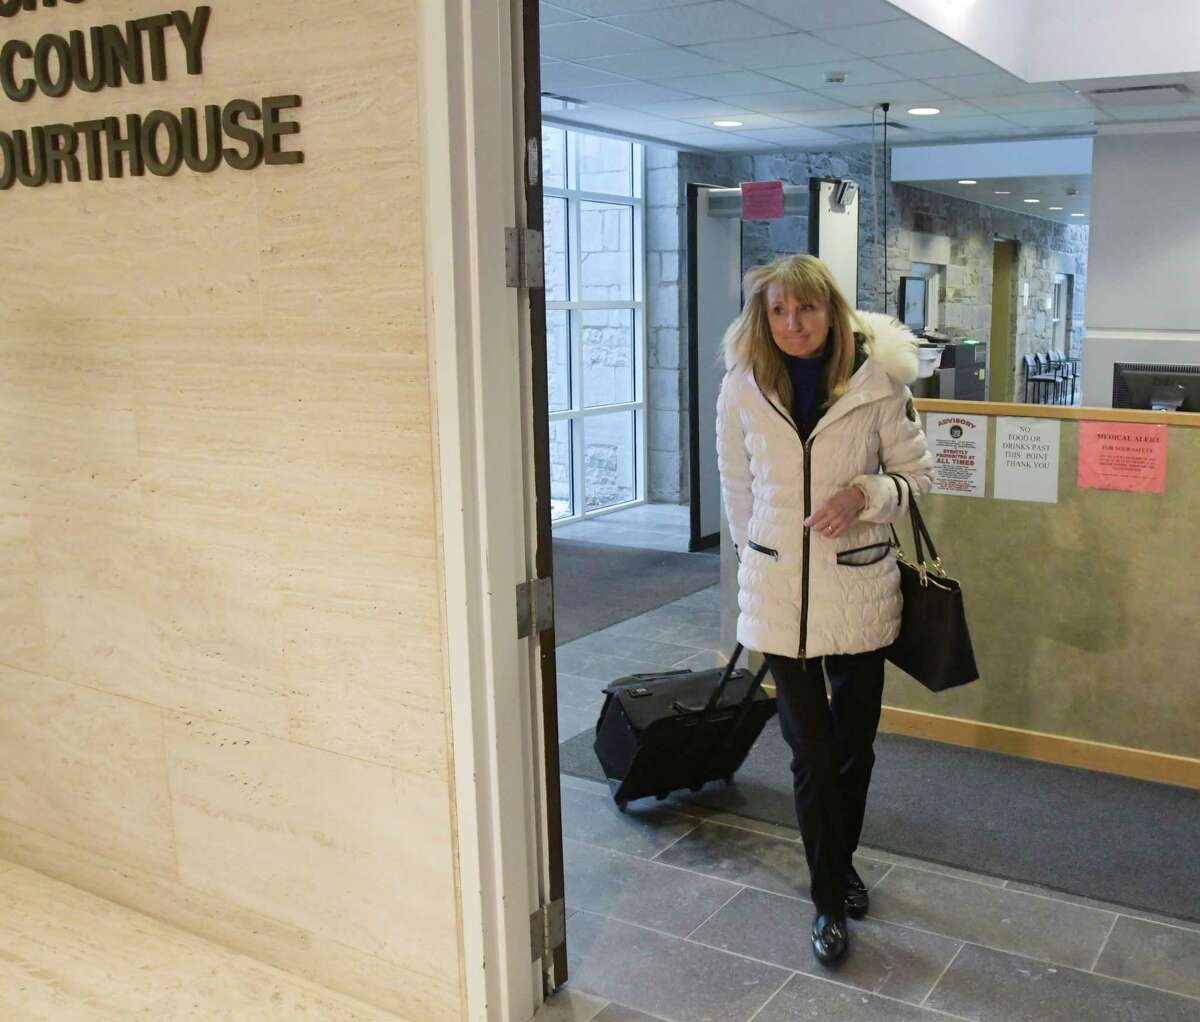 Schoharie County District Attorney Susan Mallery walks out of the Schoharie County Court House following a pre-trail hearing for Nauman Hussain on Wednesday, Jan. 22, 2020, in Schoharie, N.Y. (Paul Buckowski/Times Union)